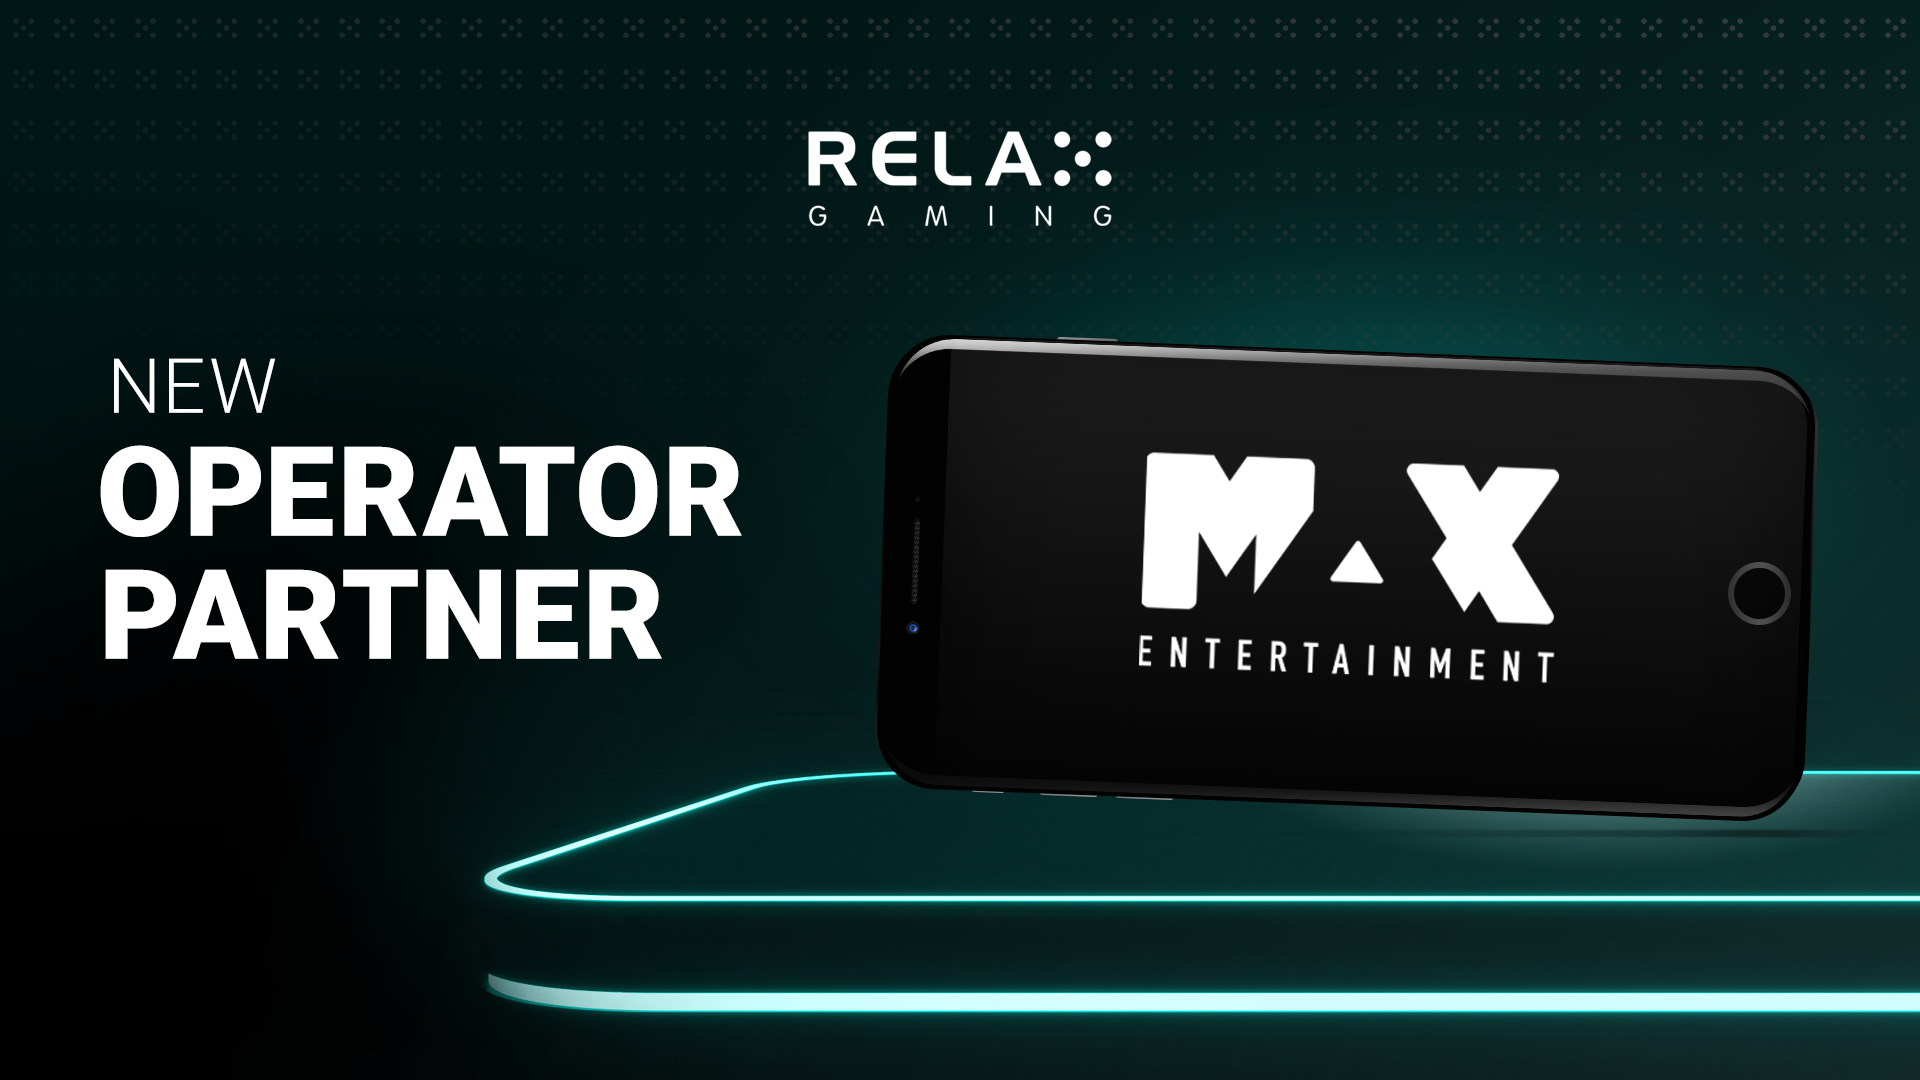 Relax Gaming teams up with Max Entertainment